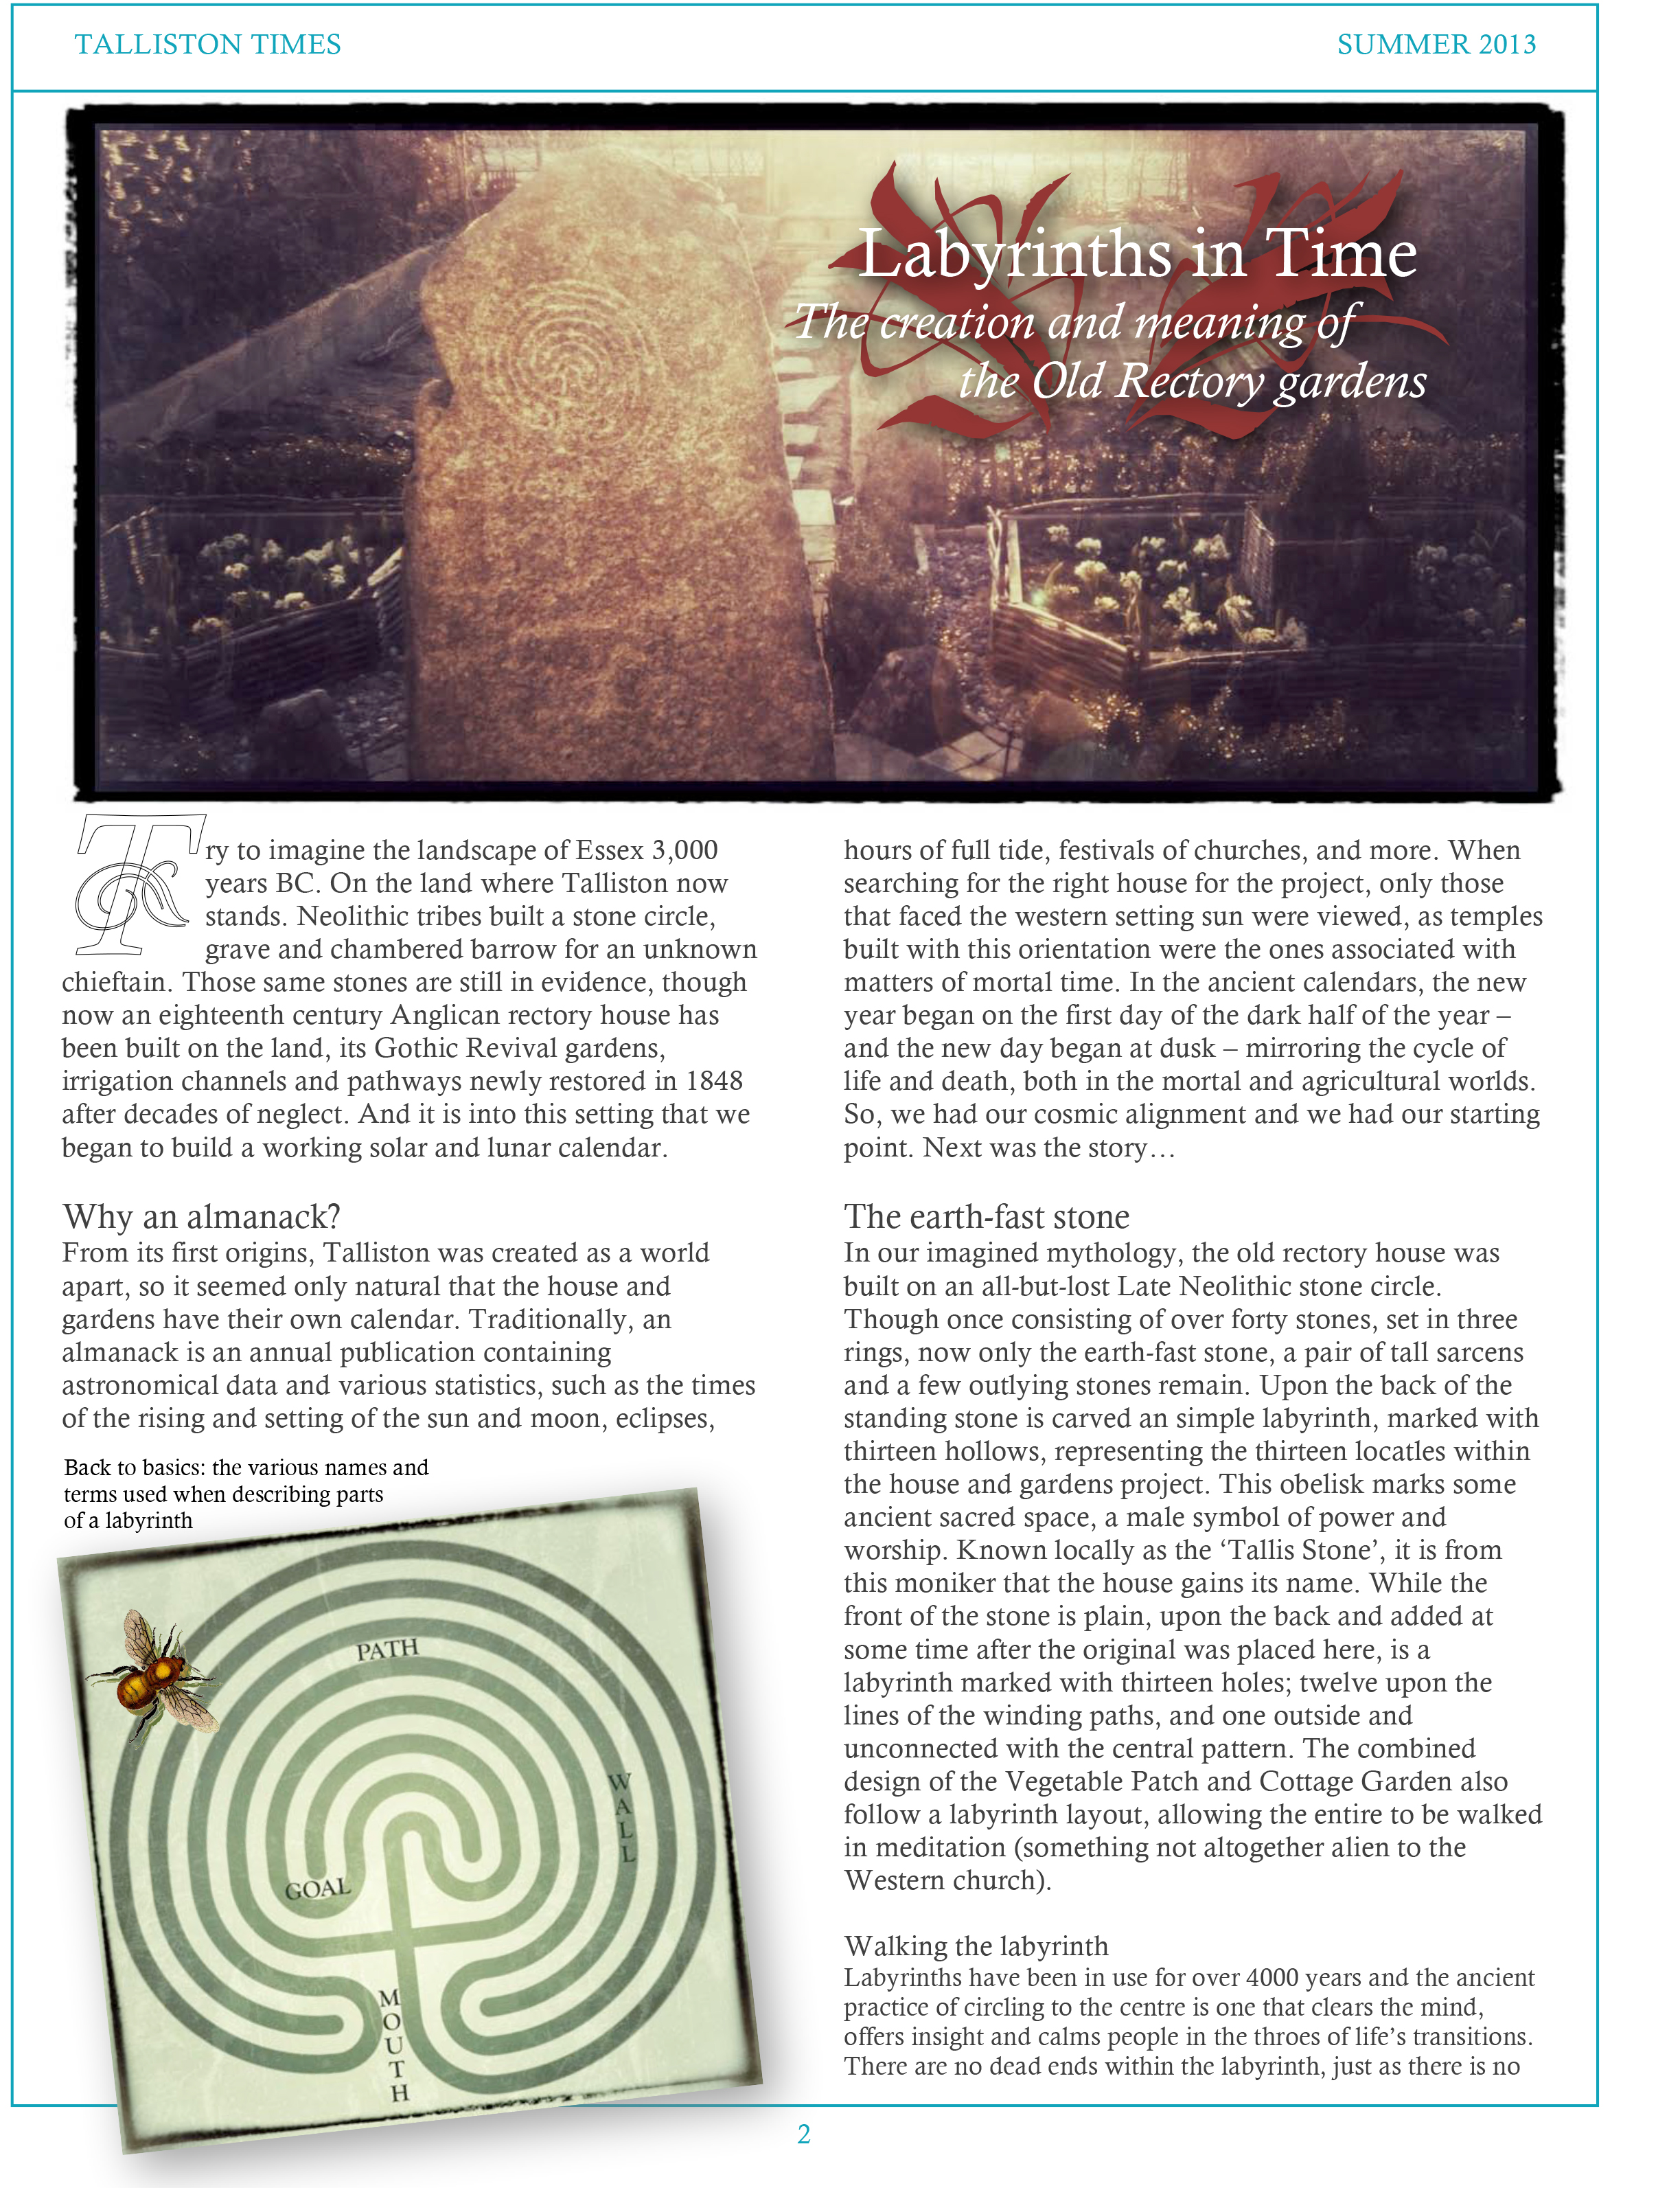 Article #2 The Talliston Almanack